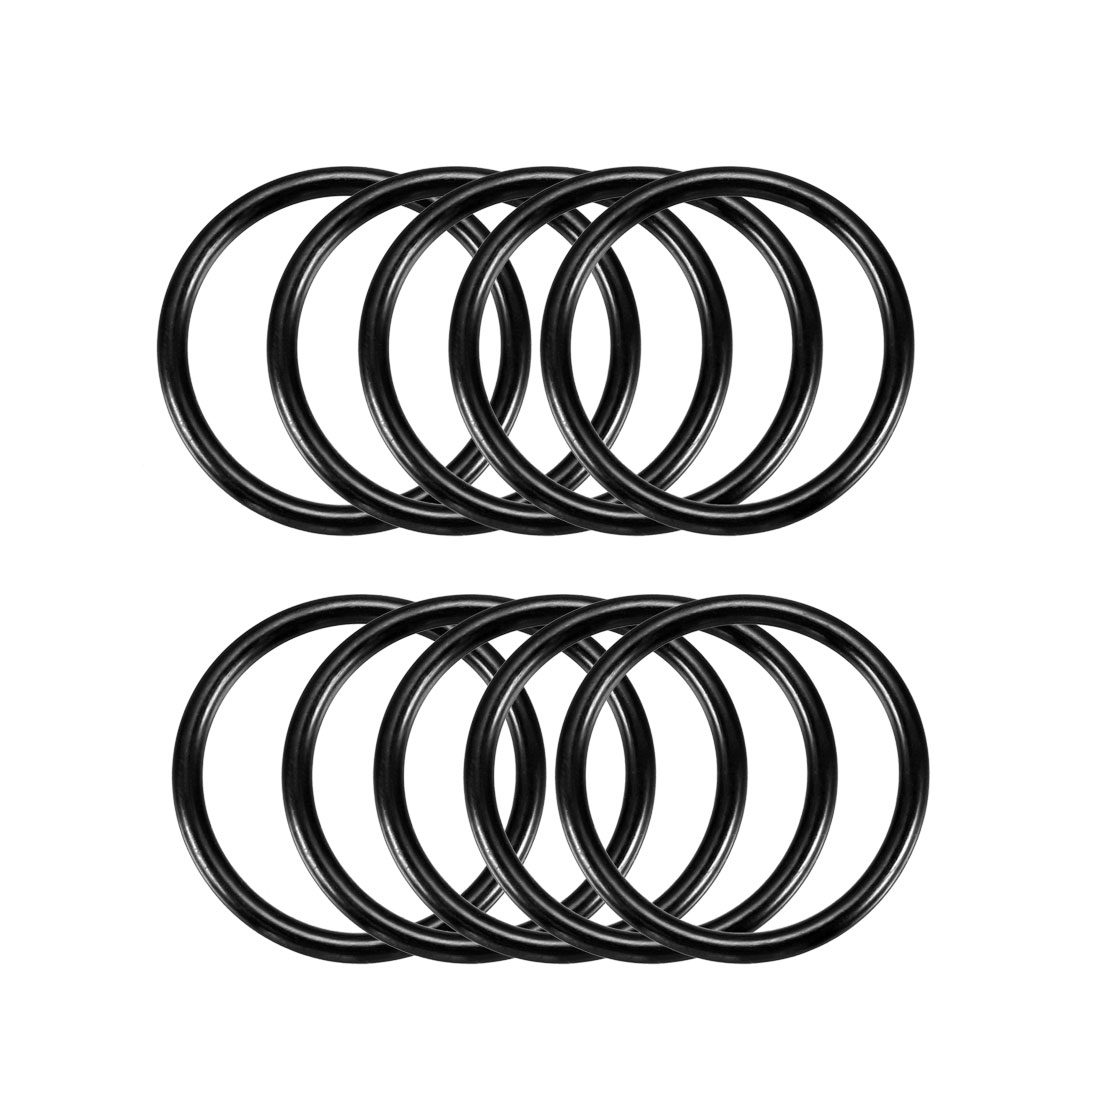 10 Pcs 30mm x 2.5mm Mechanical Rubber O Ring Oil Seal Gaskets